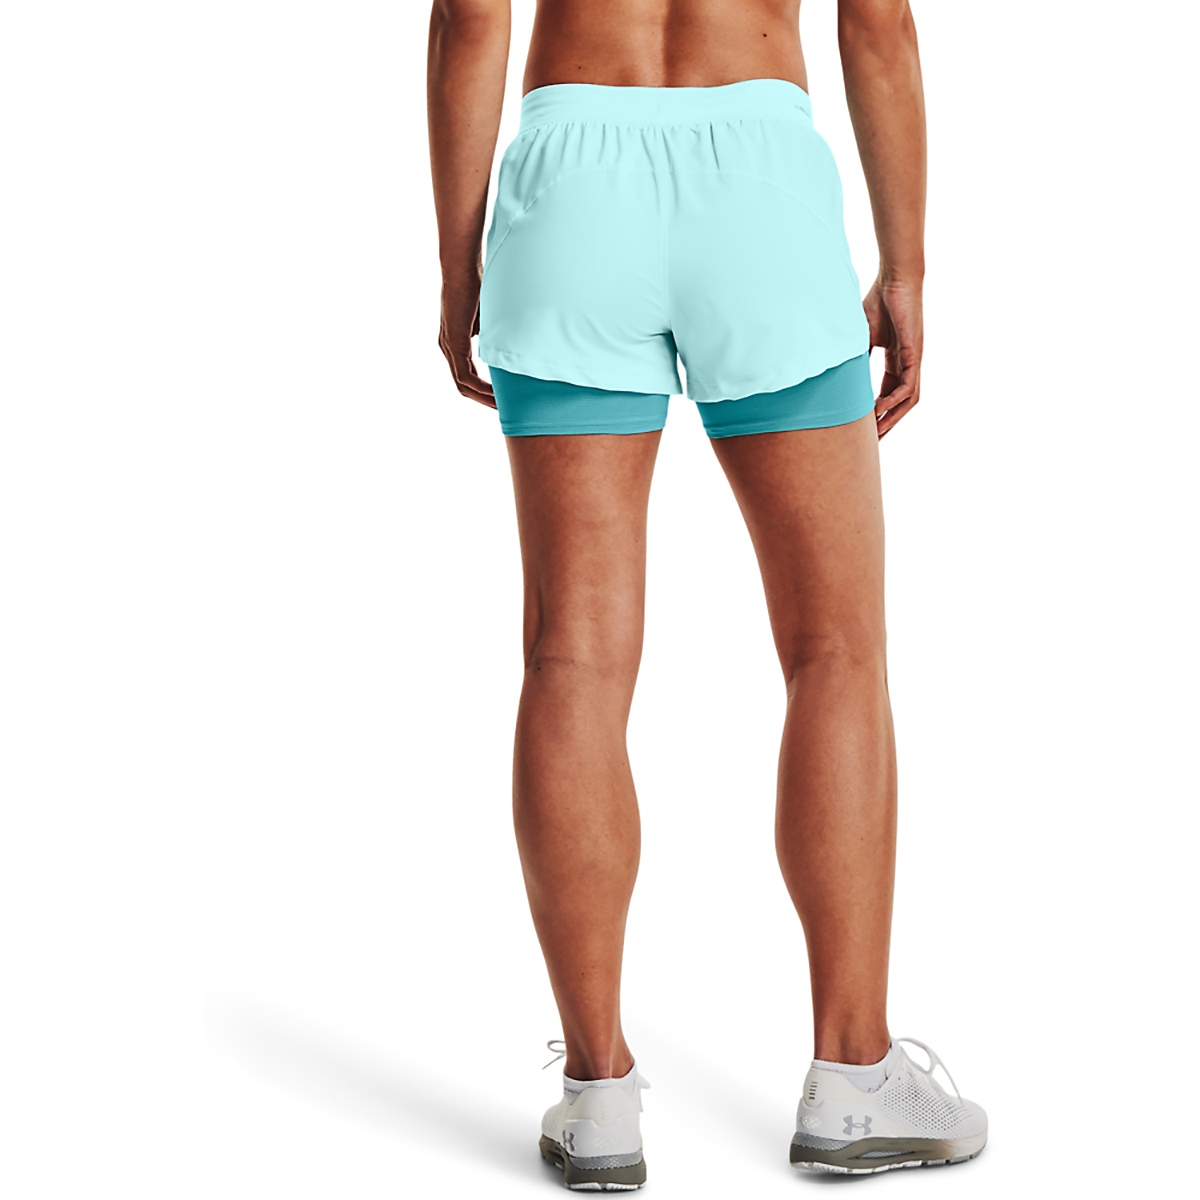 Women's Under Armour Isochill Run 2 in 1 Short - Color: Breeze Cosmos - Size: XS, Breeze Cosmos, large, image 2